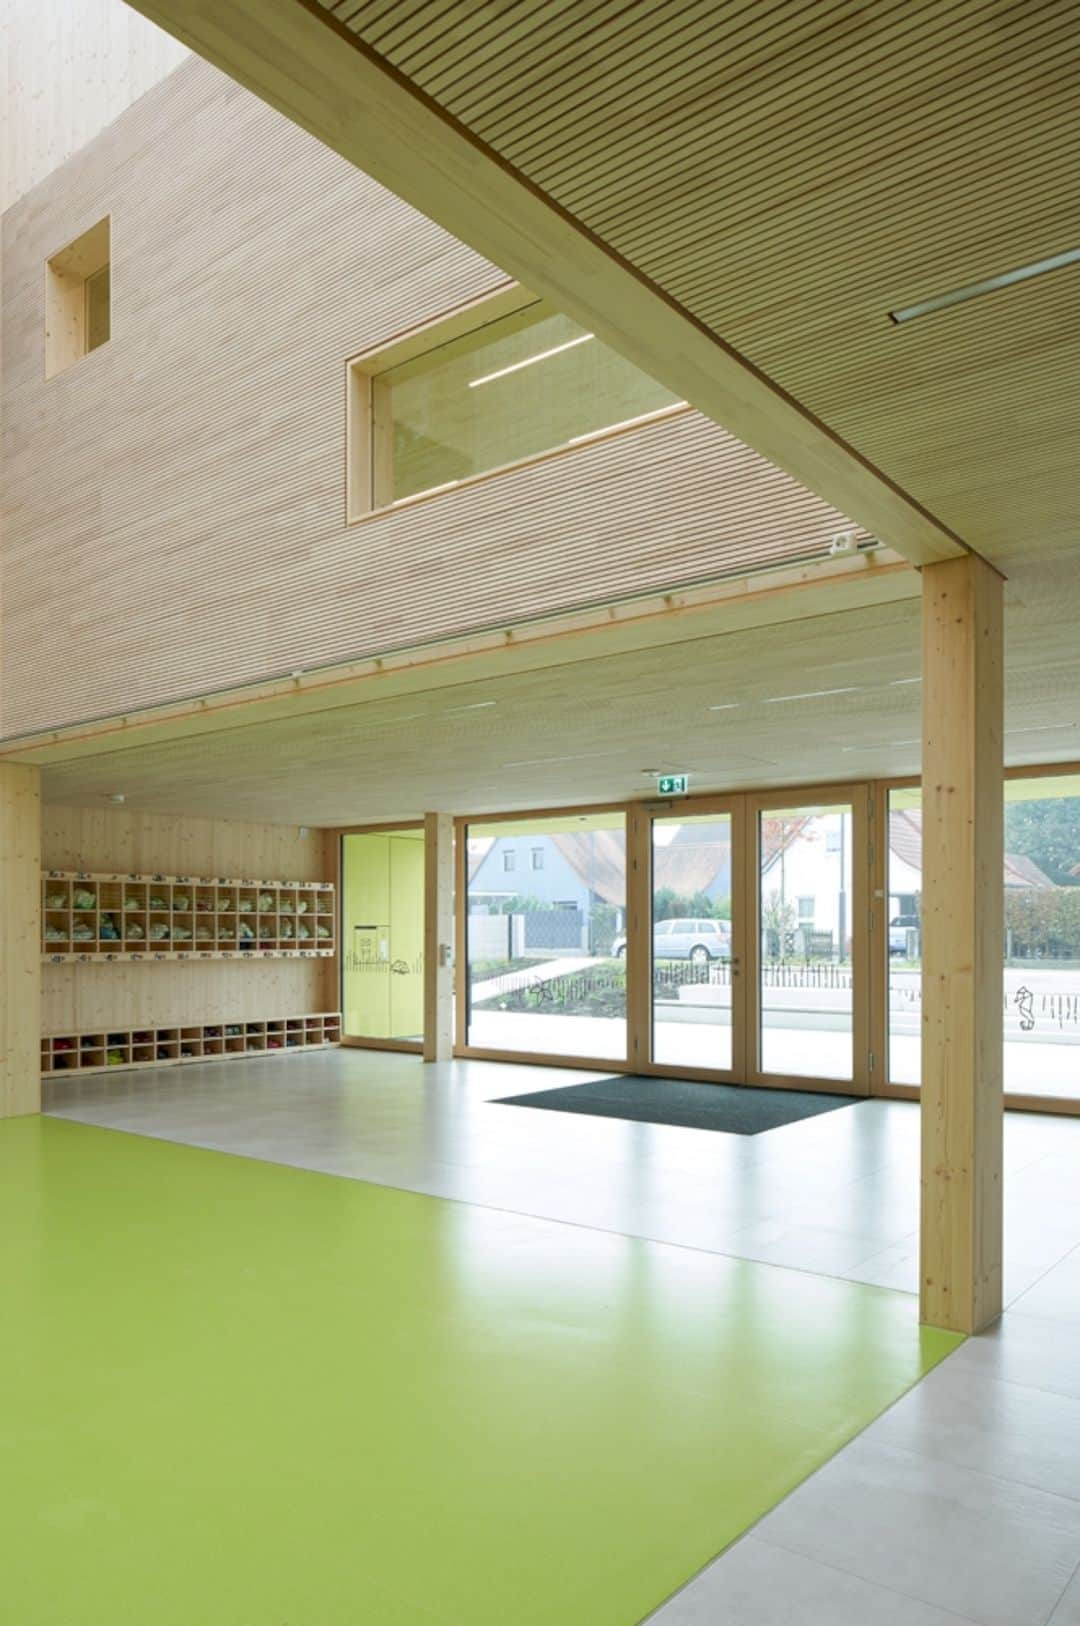 Kindergarten St Laurentius By Goldbrunner Architektur 1